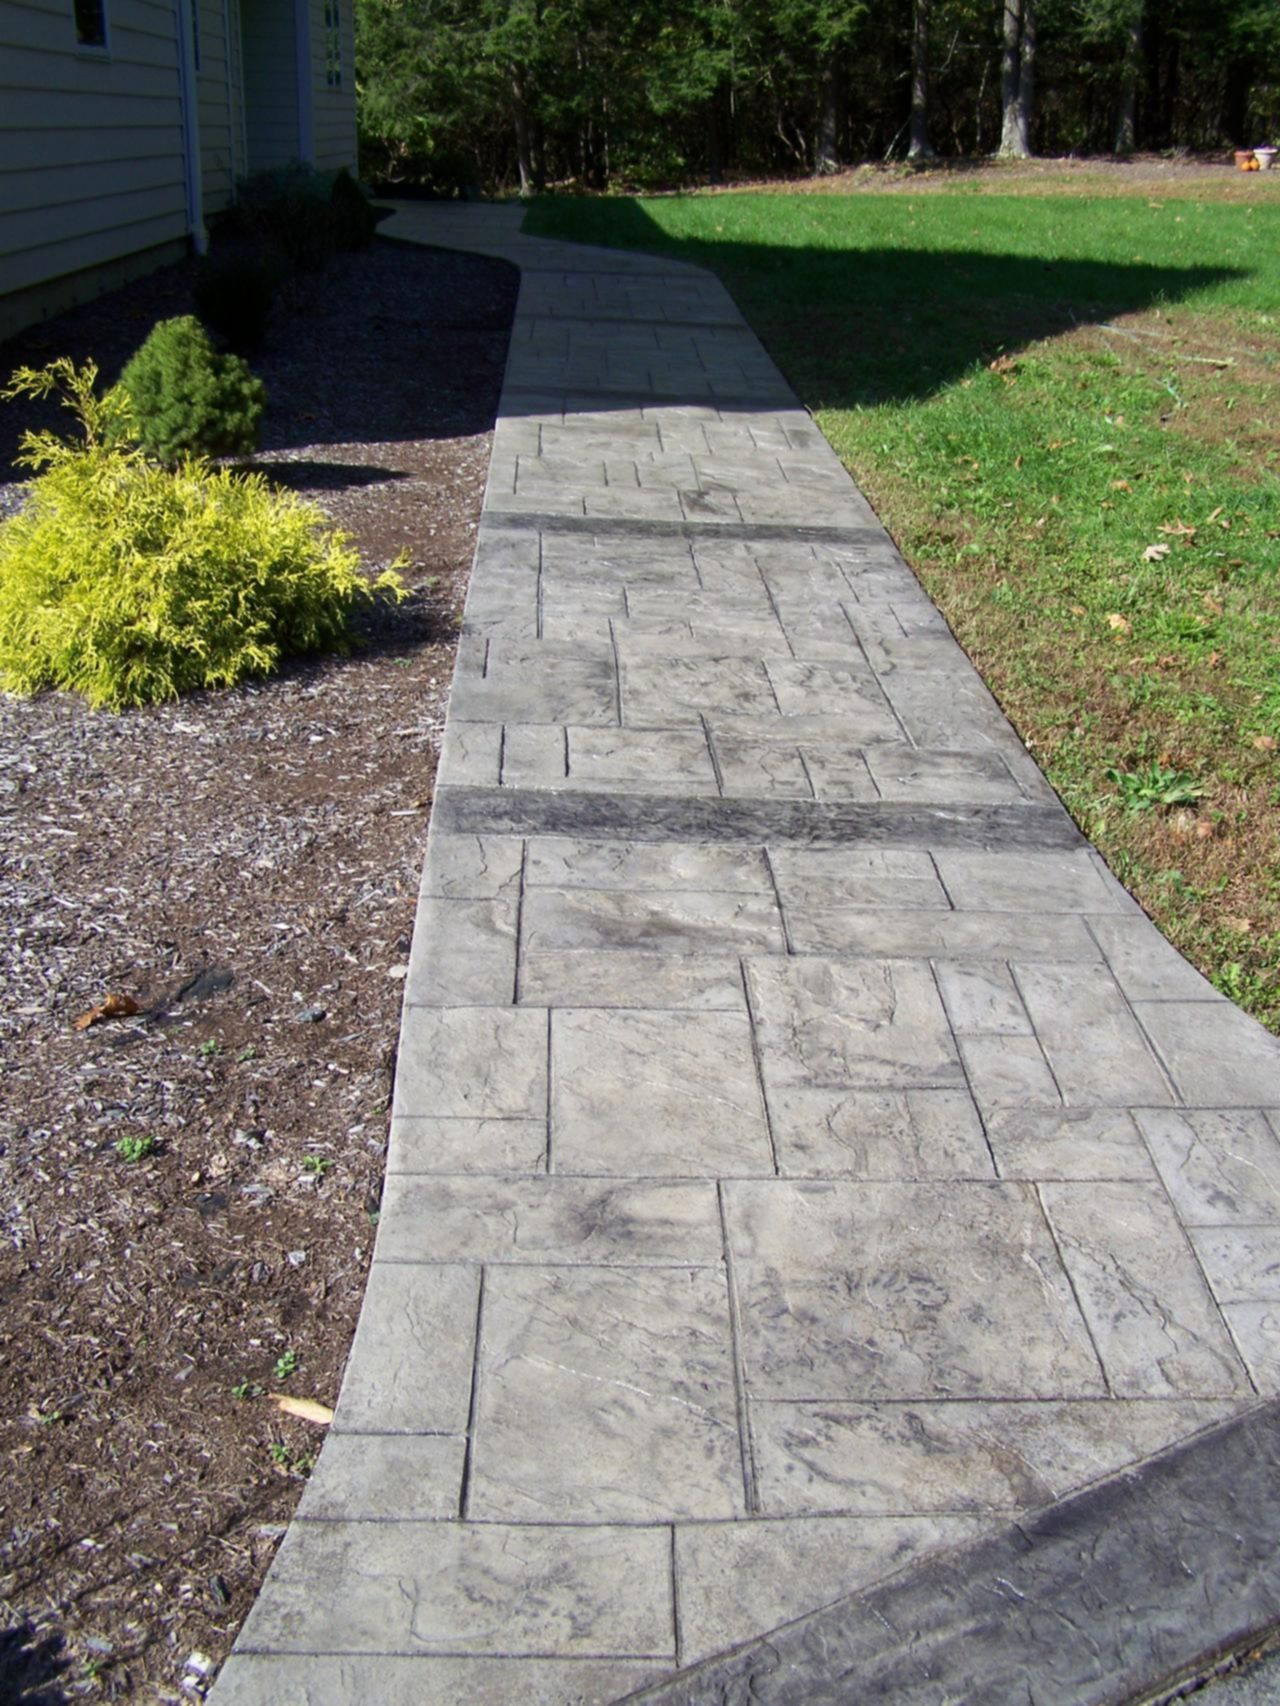 Wicked 10 Best Stamped Concrete Walkways Ideas For Your Home Https Decoor